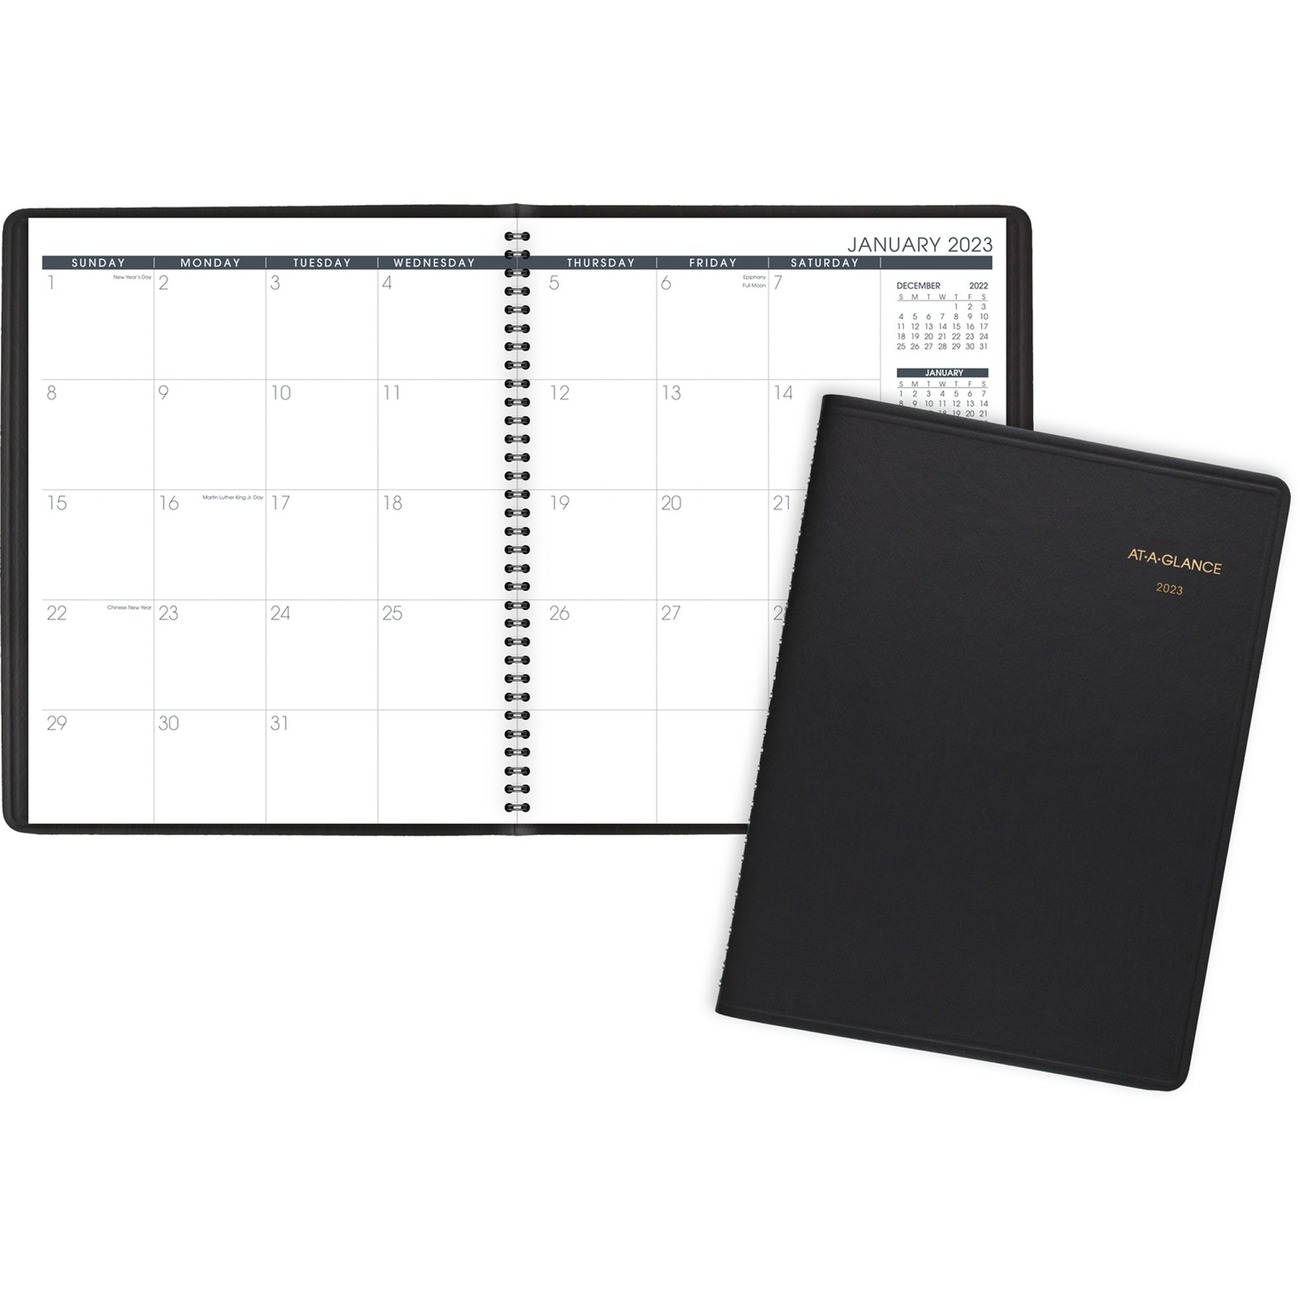 kamloops office systems    office supplies    calendars